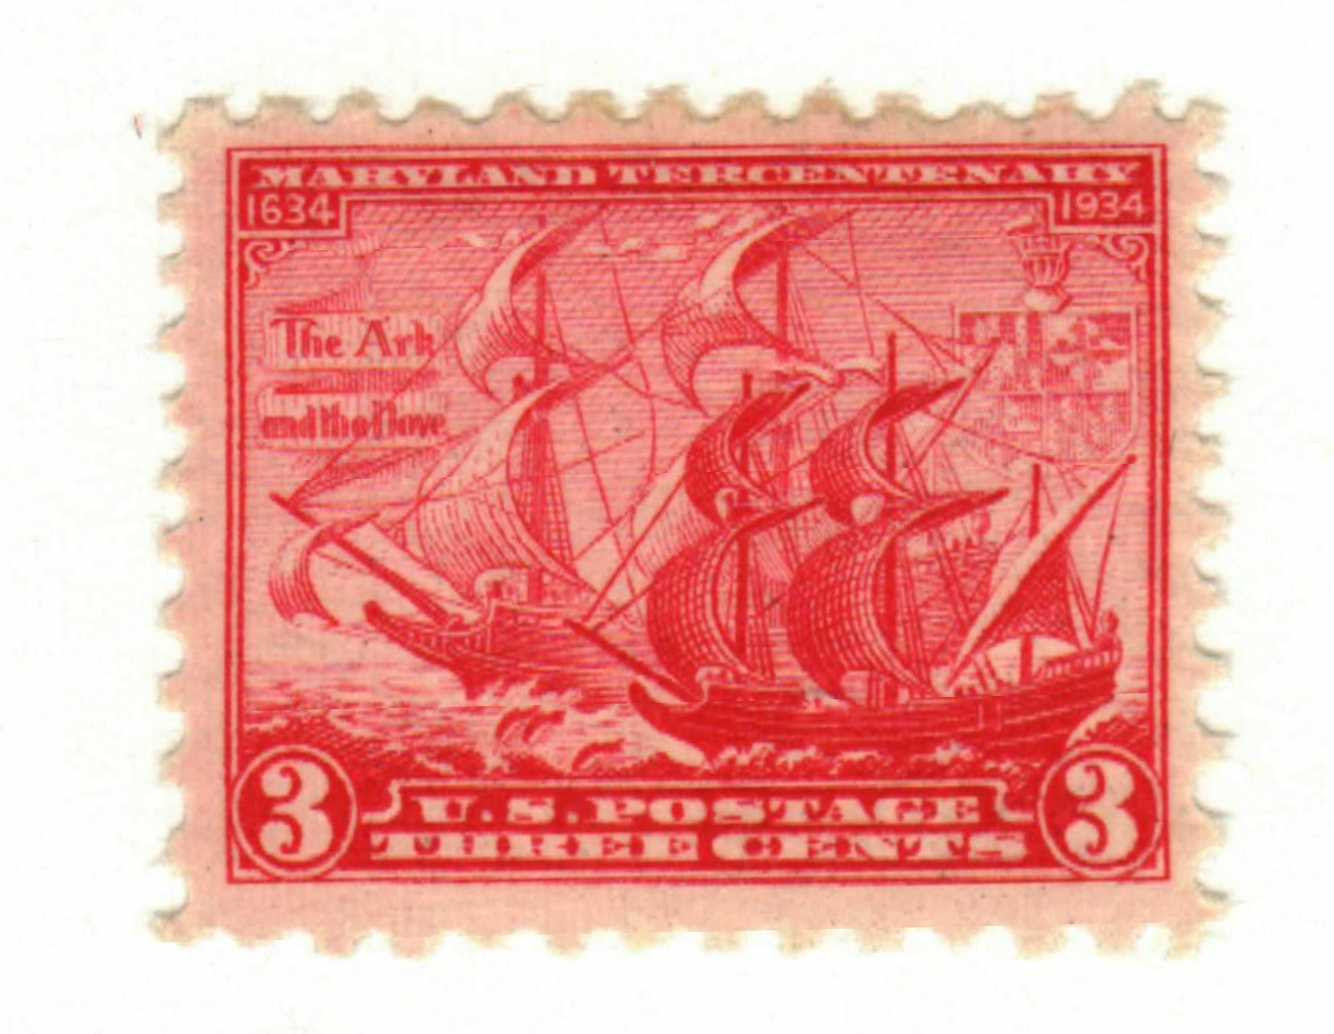 Maryland tercentenary postage stamp: The Ark and the Dove, 1934 Issue